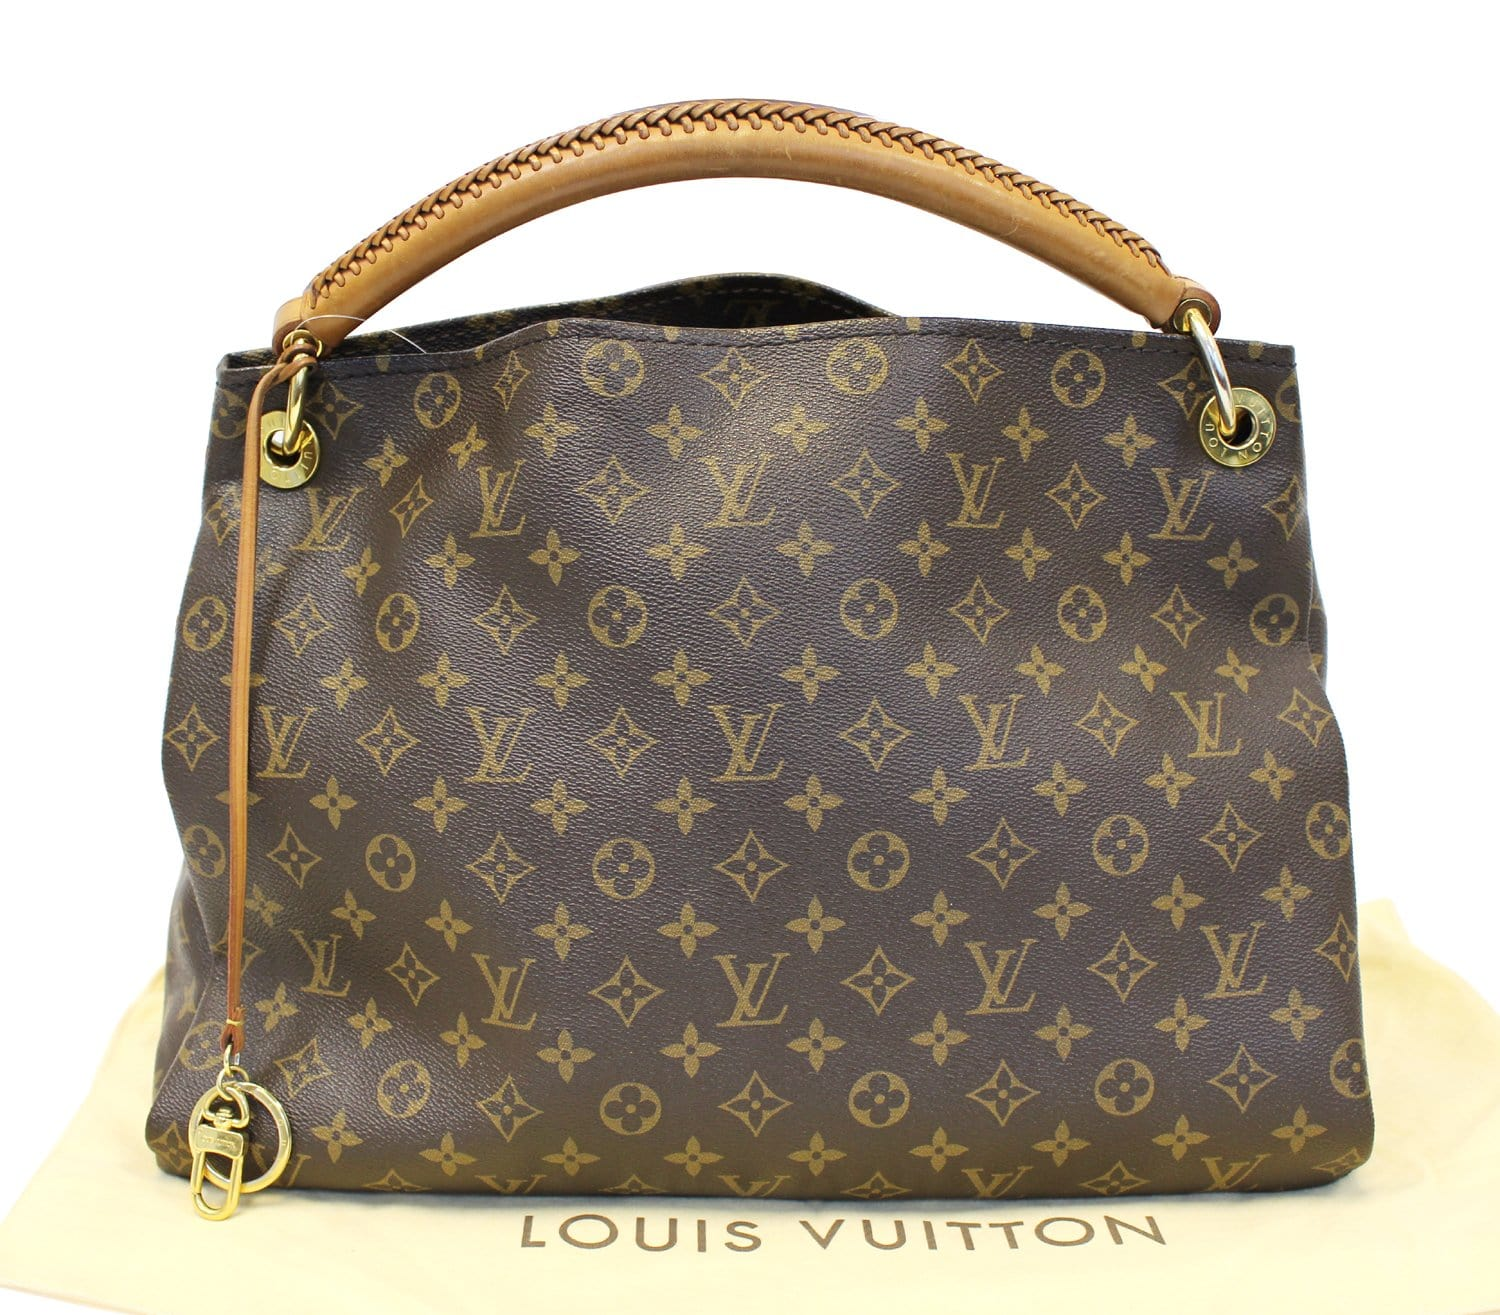 LOUIS VUITTON Pre Loved Artsy MM Monogram Canvas Tote Handbag d53f7a56b6